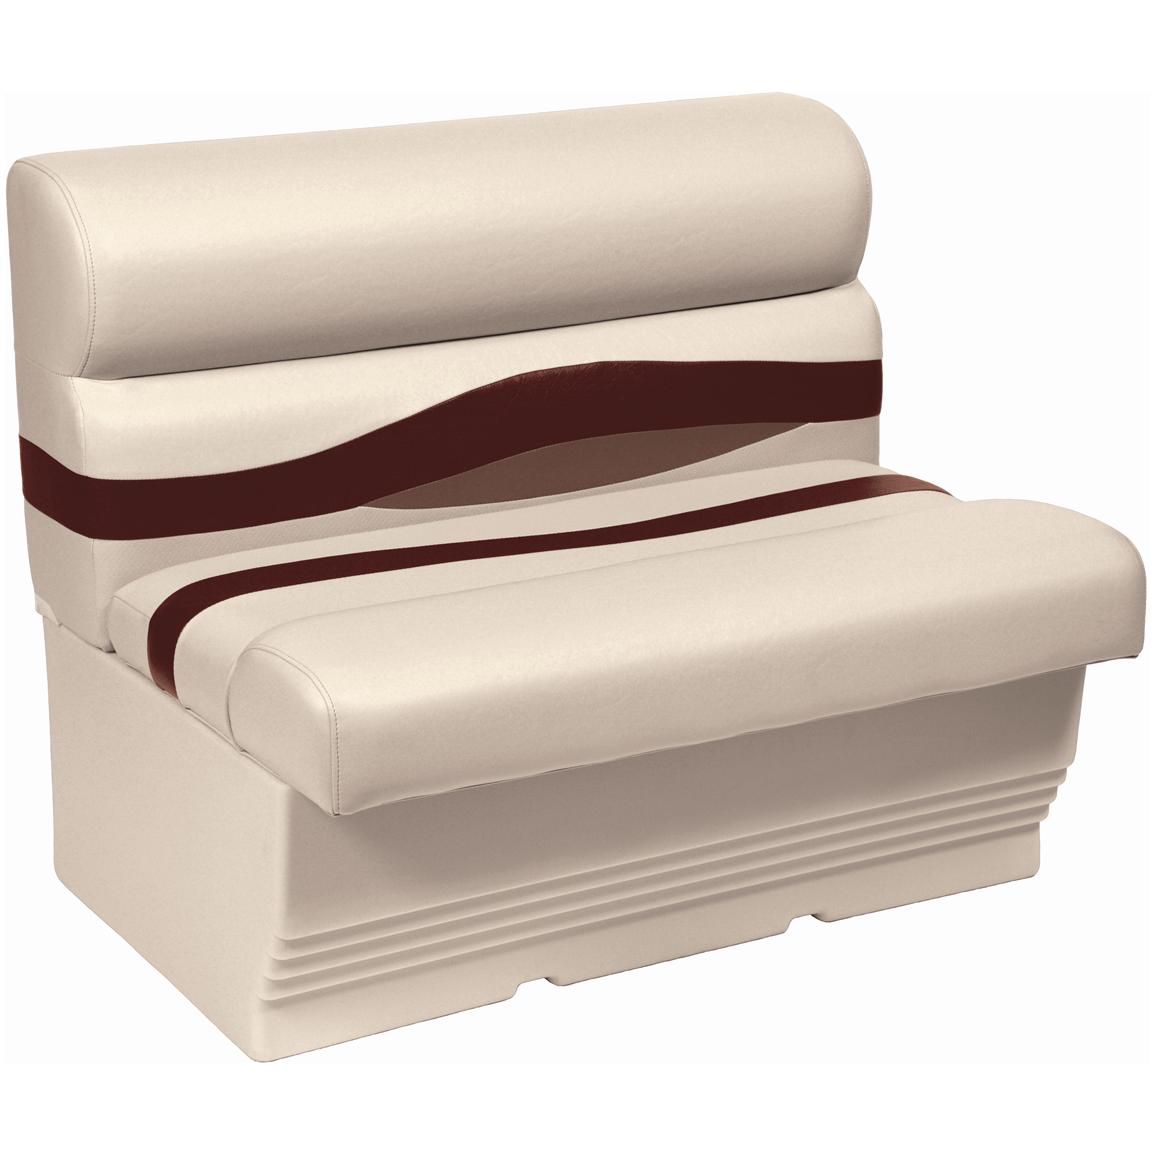 "Wise® Premier 45"" Pontoon Bench Seat, Color C - Platinum Punch / Wineberry / Manatee"